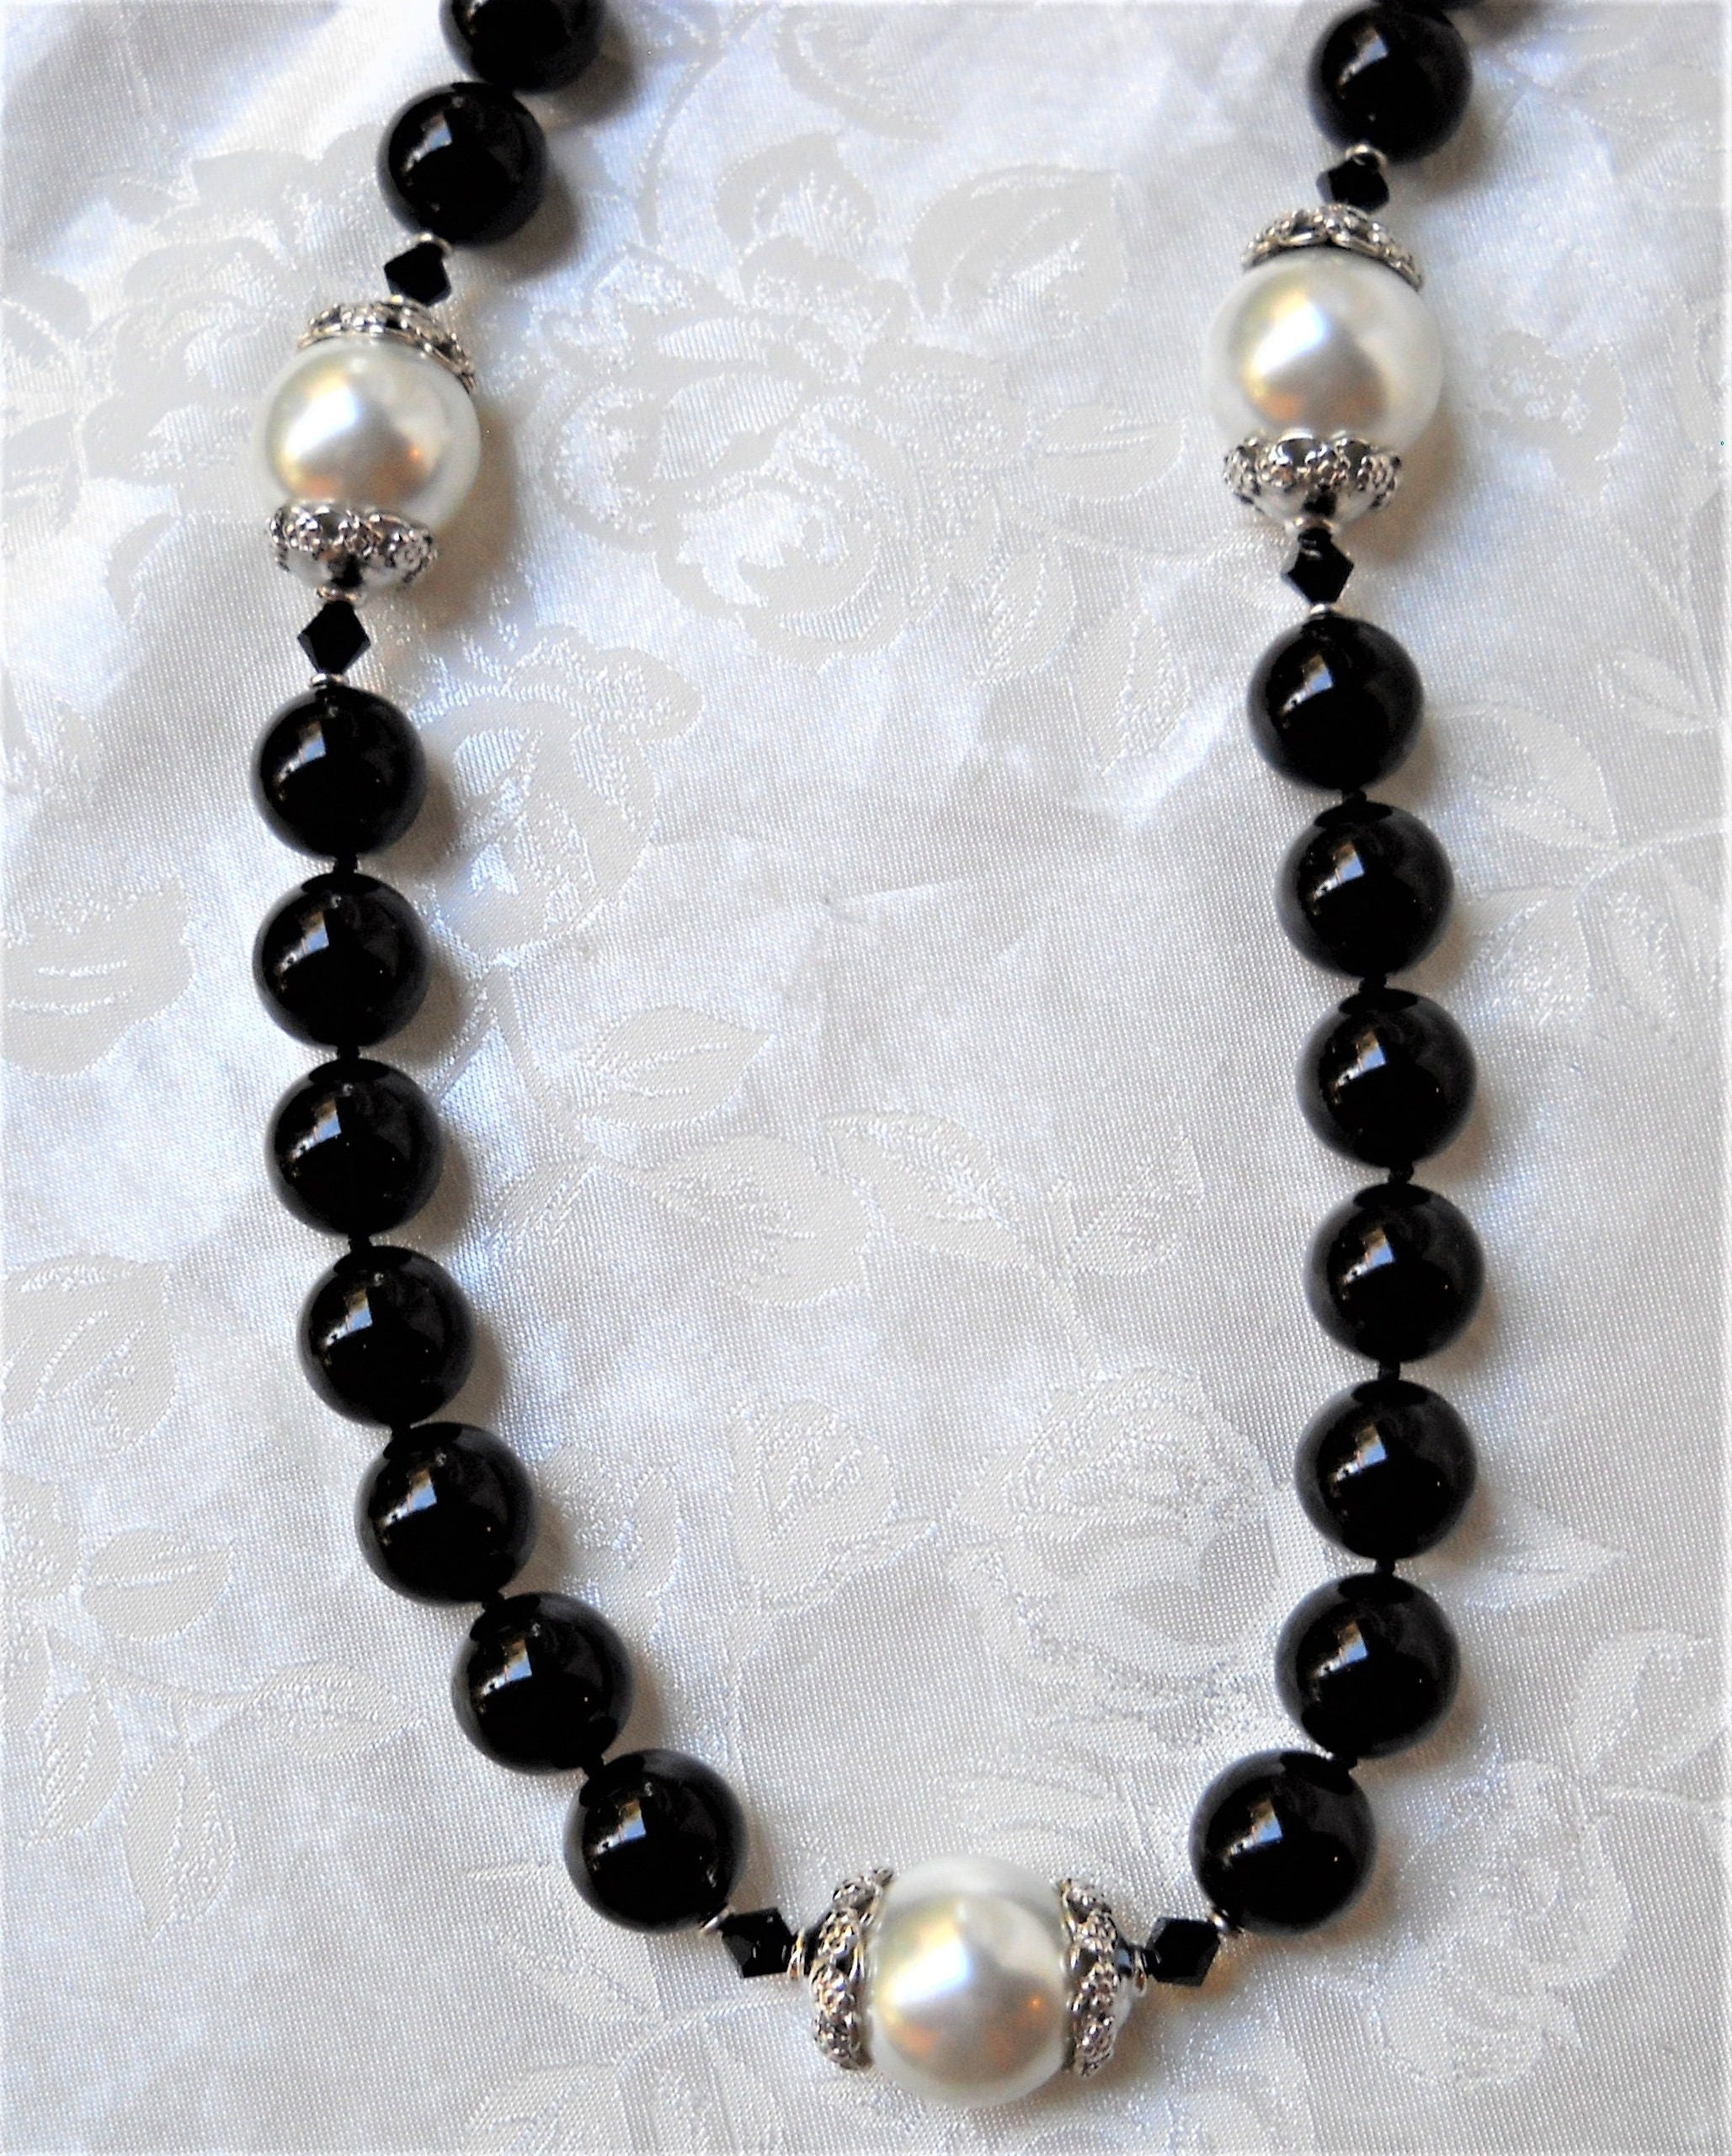 Mallorca Pearl Necklace: Long Majorca/Mallorca Pearl Necklace Black Onyx/white Majorca